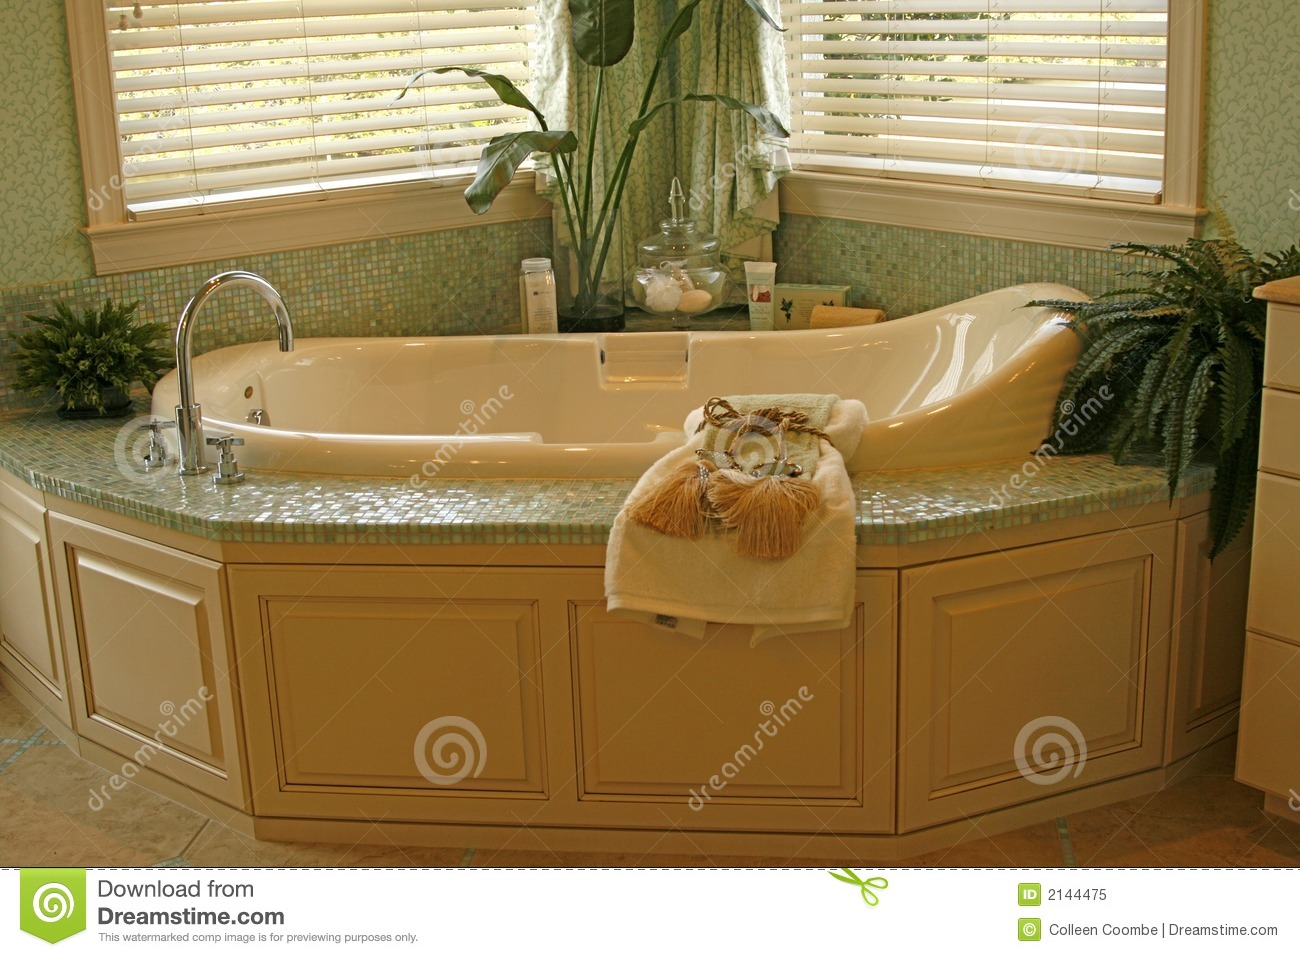 Built in bathtub royalty free stock photo image 2144475 for Built in tub